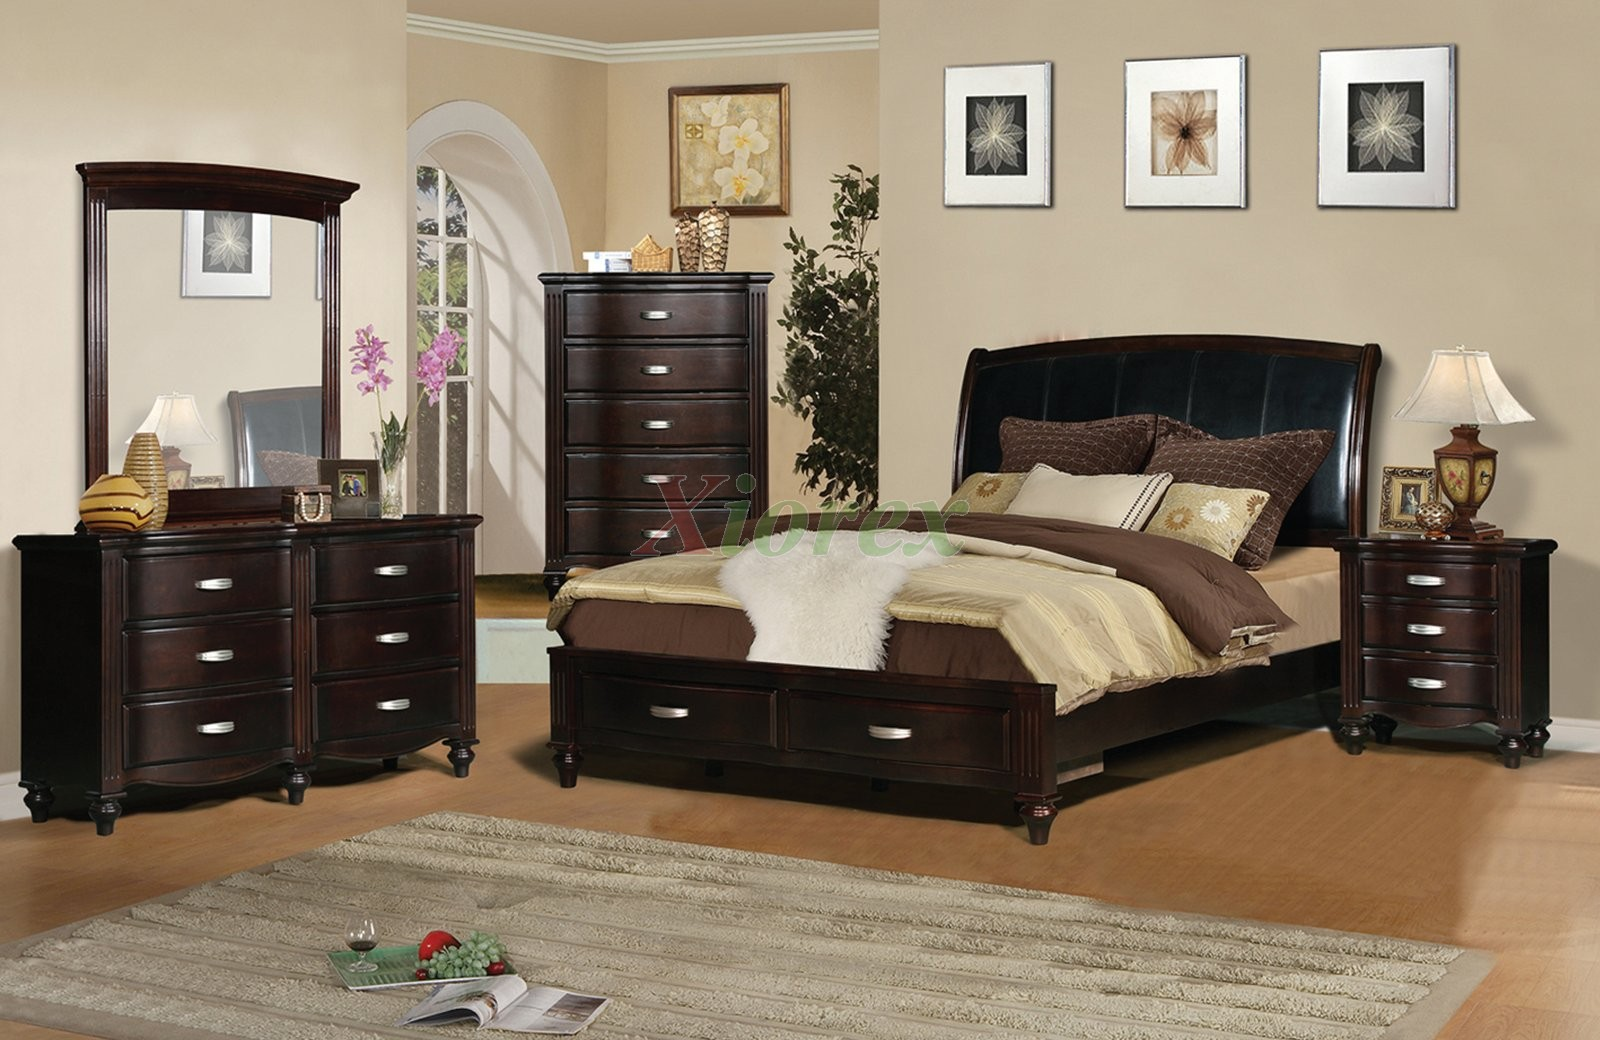 Platform Bedroom Furniture Set With Leather Headboard 132 Xiorex